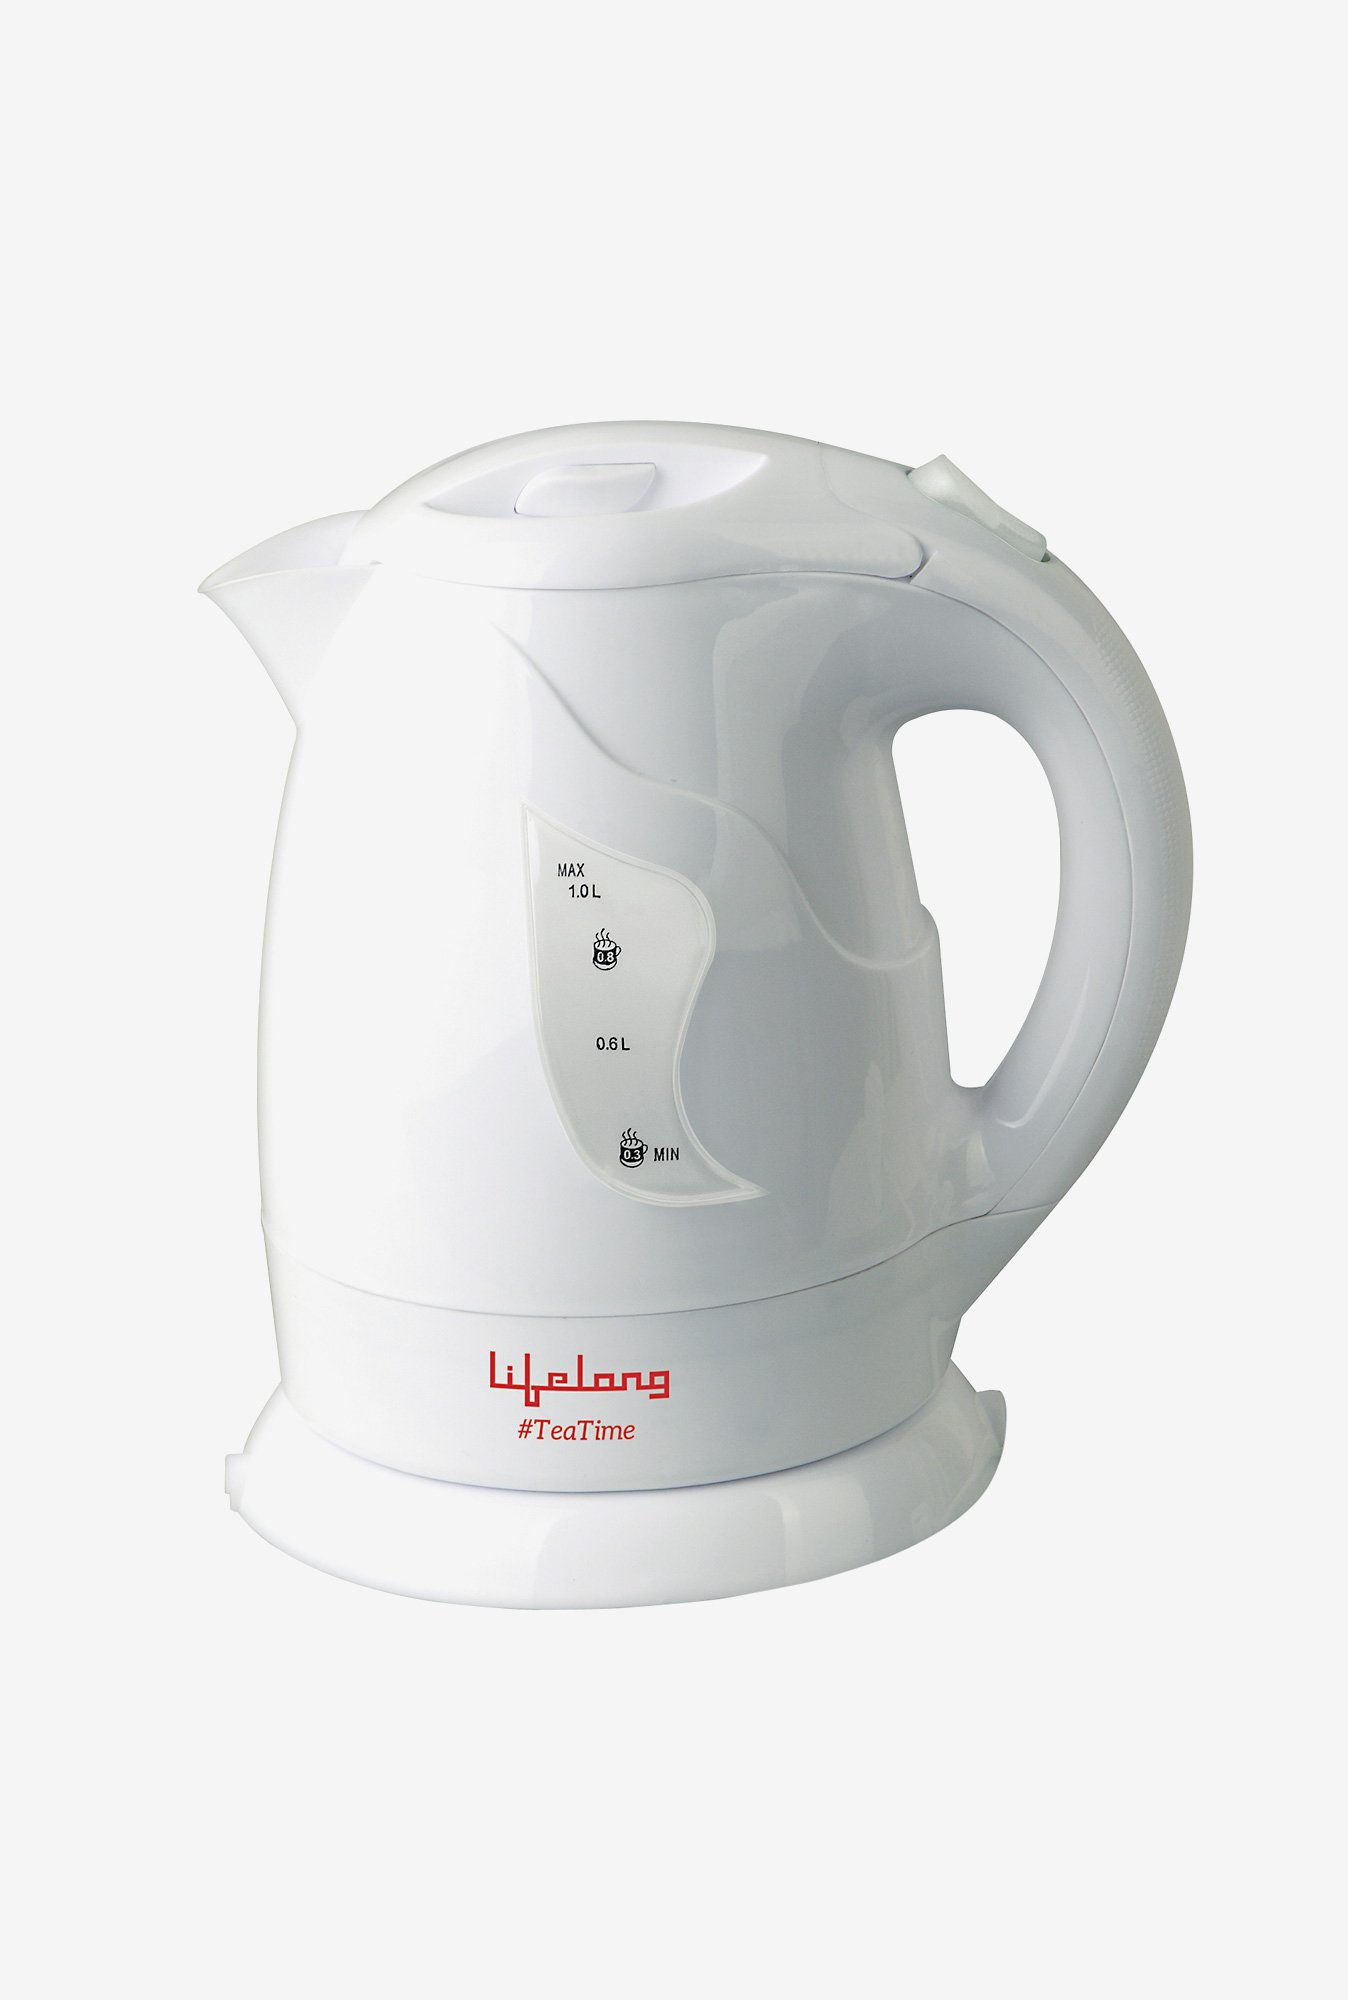 Lifelong TeaTime2 1 L Hairpin Electric Kettle (White)